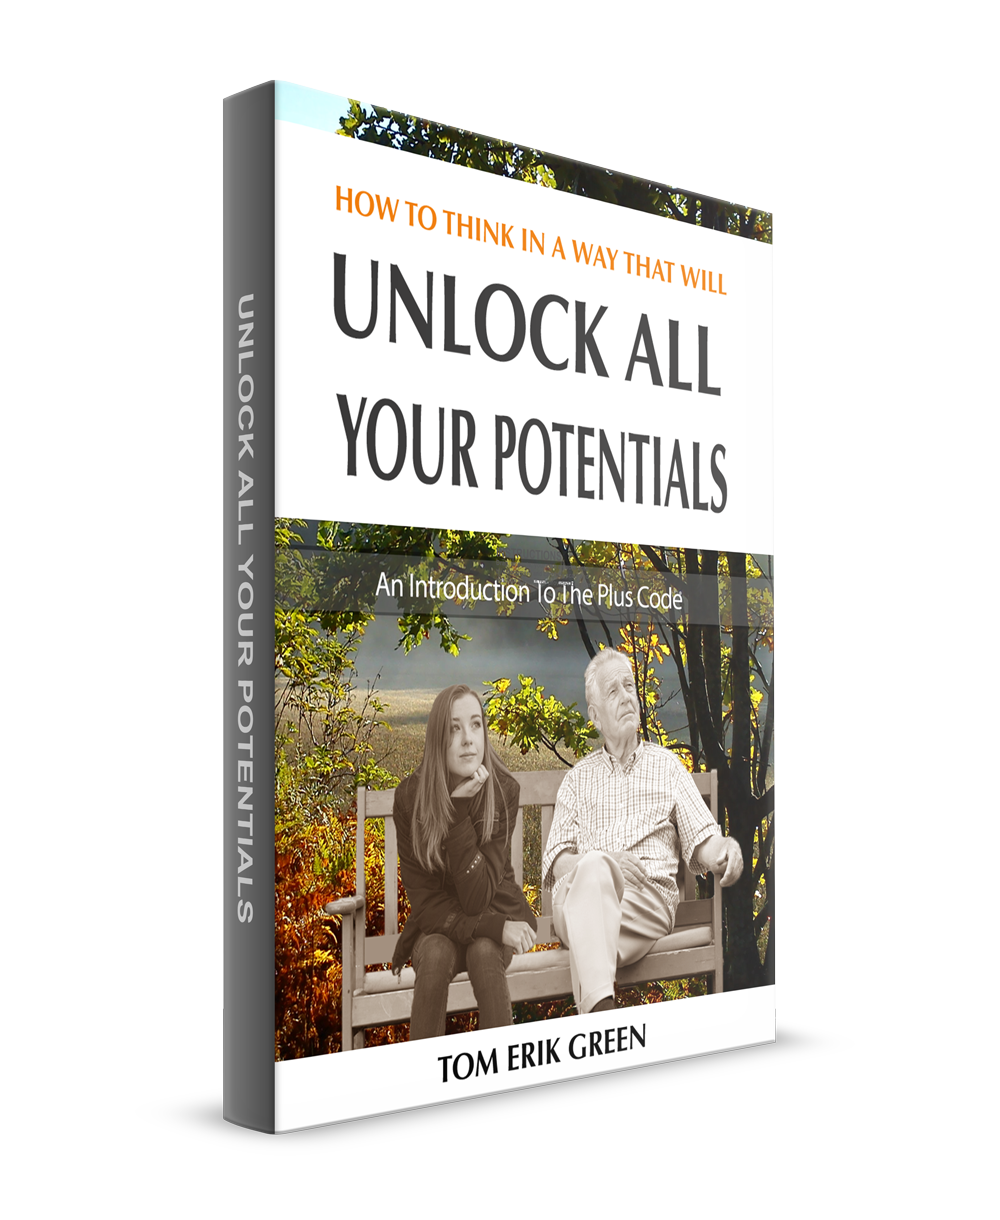 Unlock all your potentials